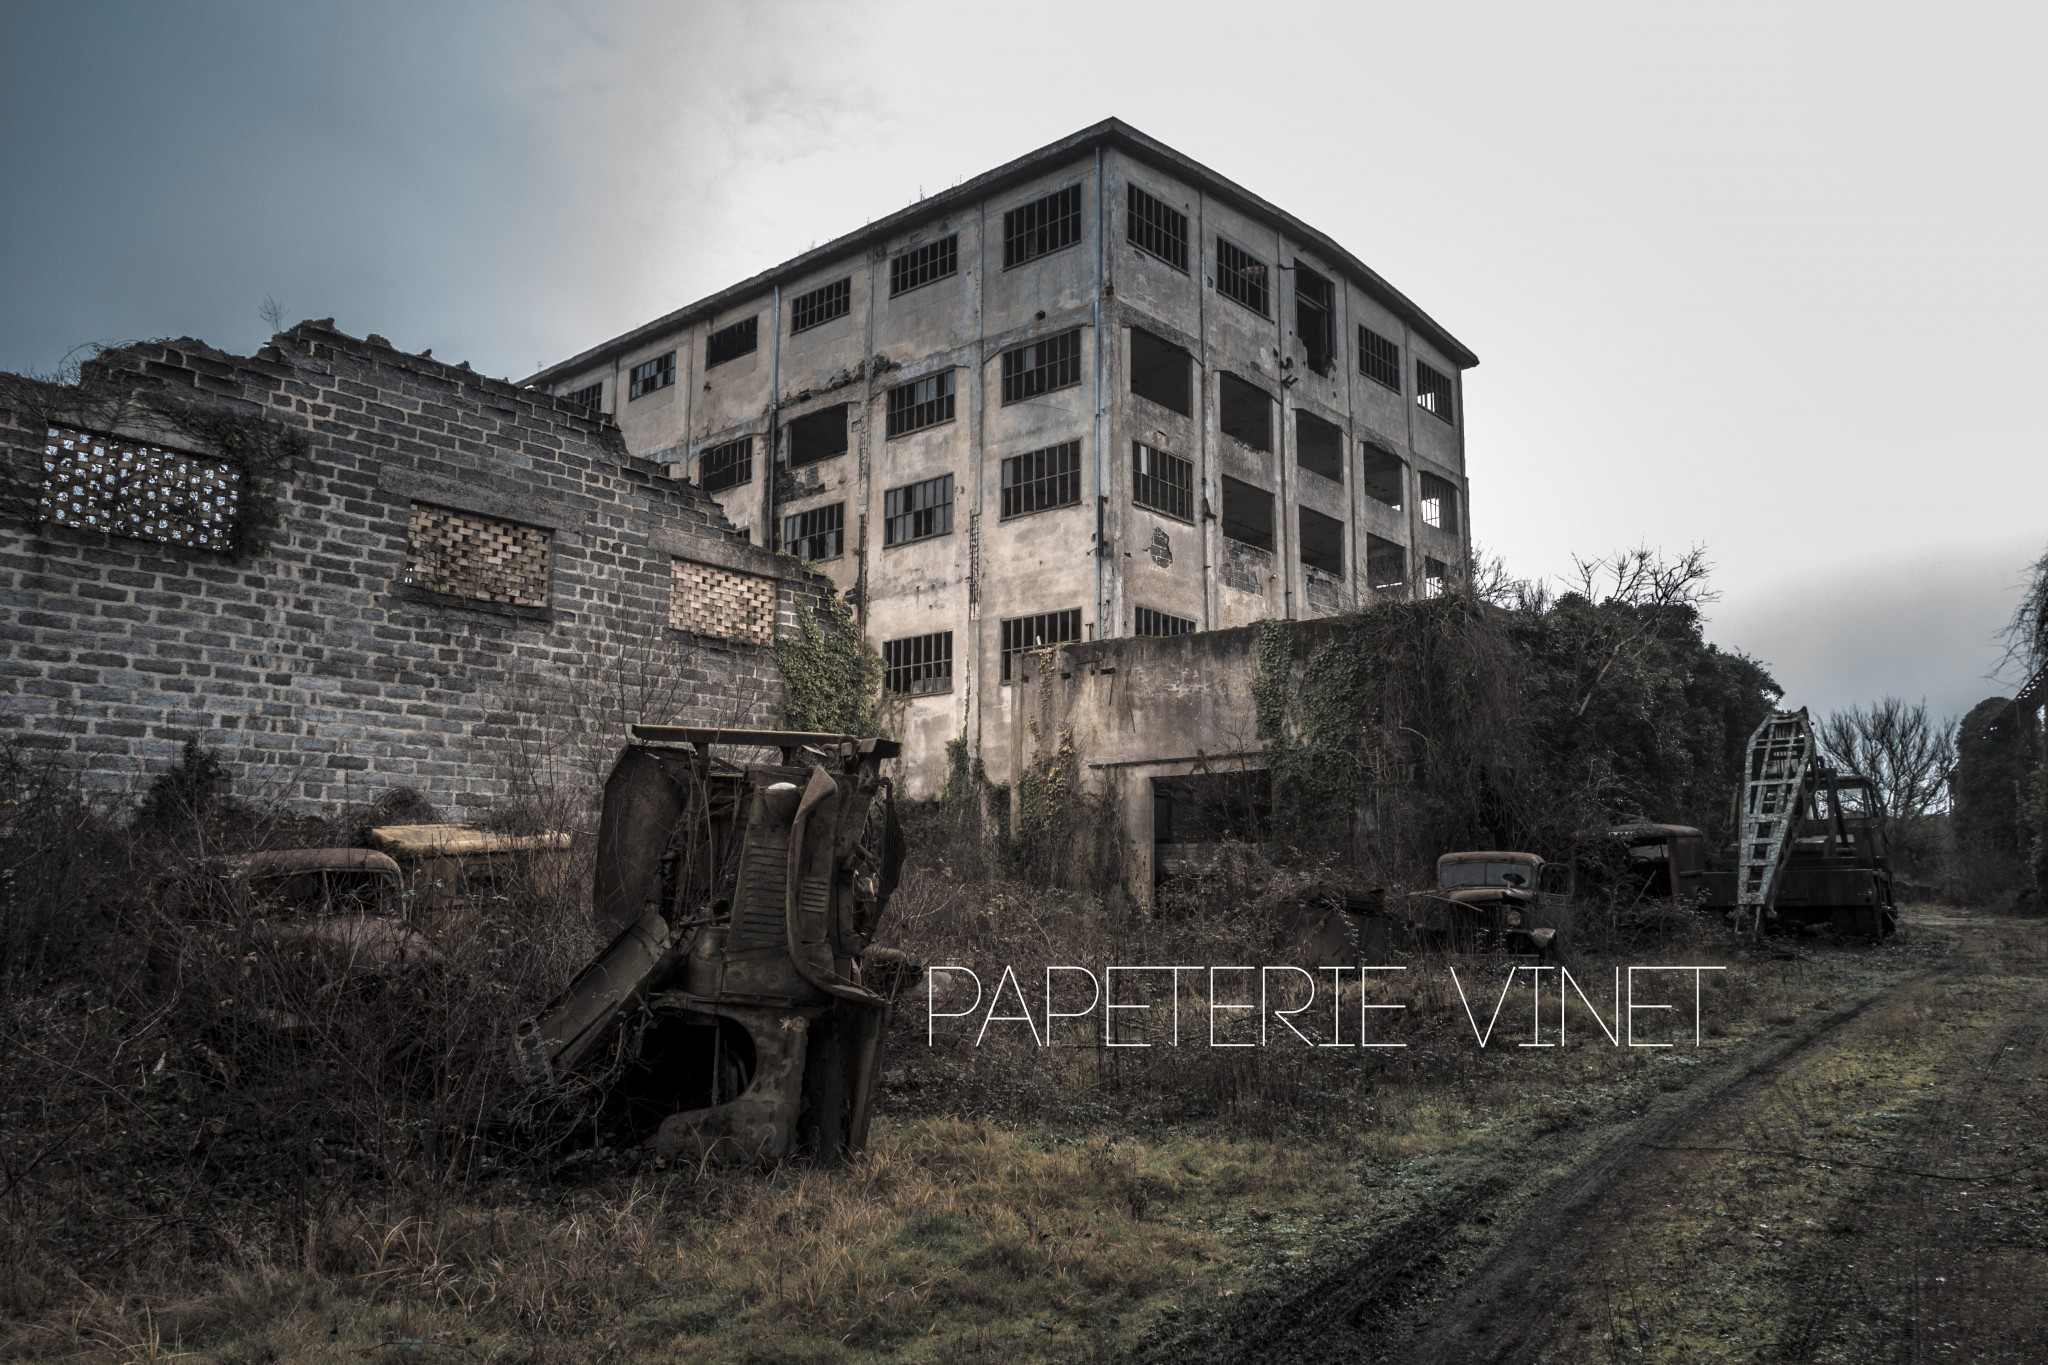 papeterie vinet exploration urbex gironde. Black Bedroom Furniture Sets. Home Design Ideas